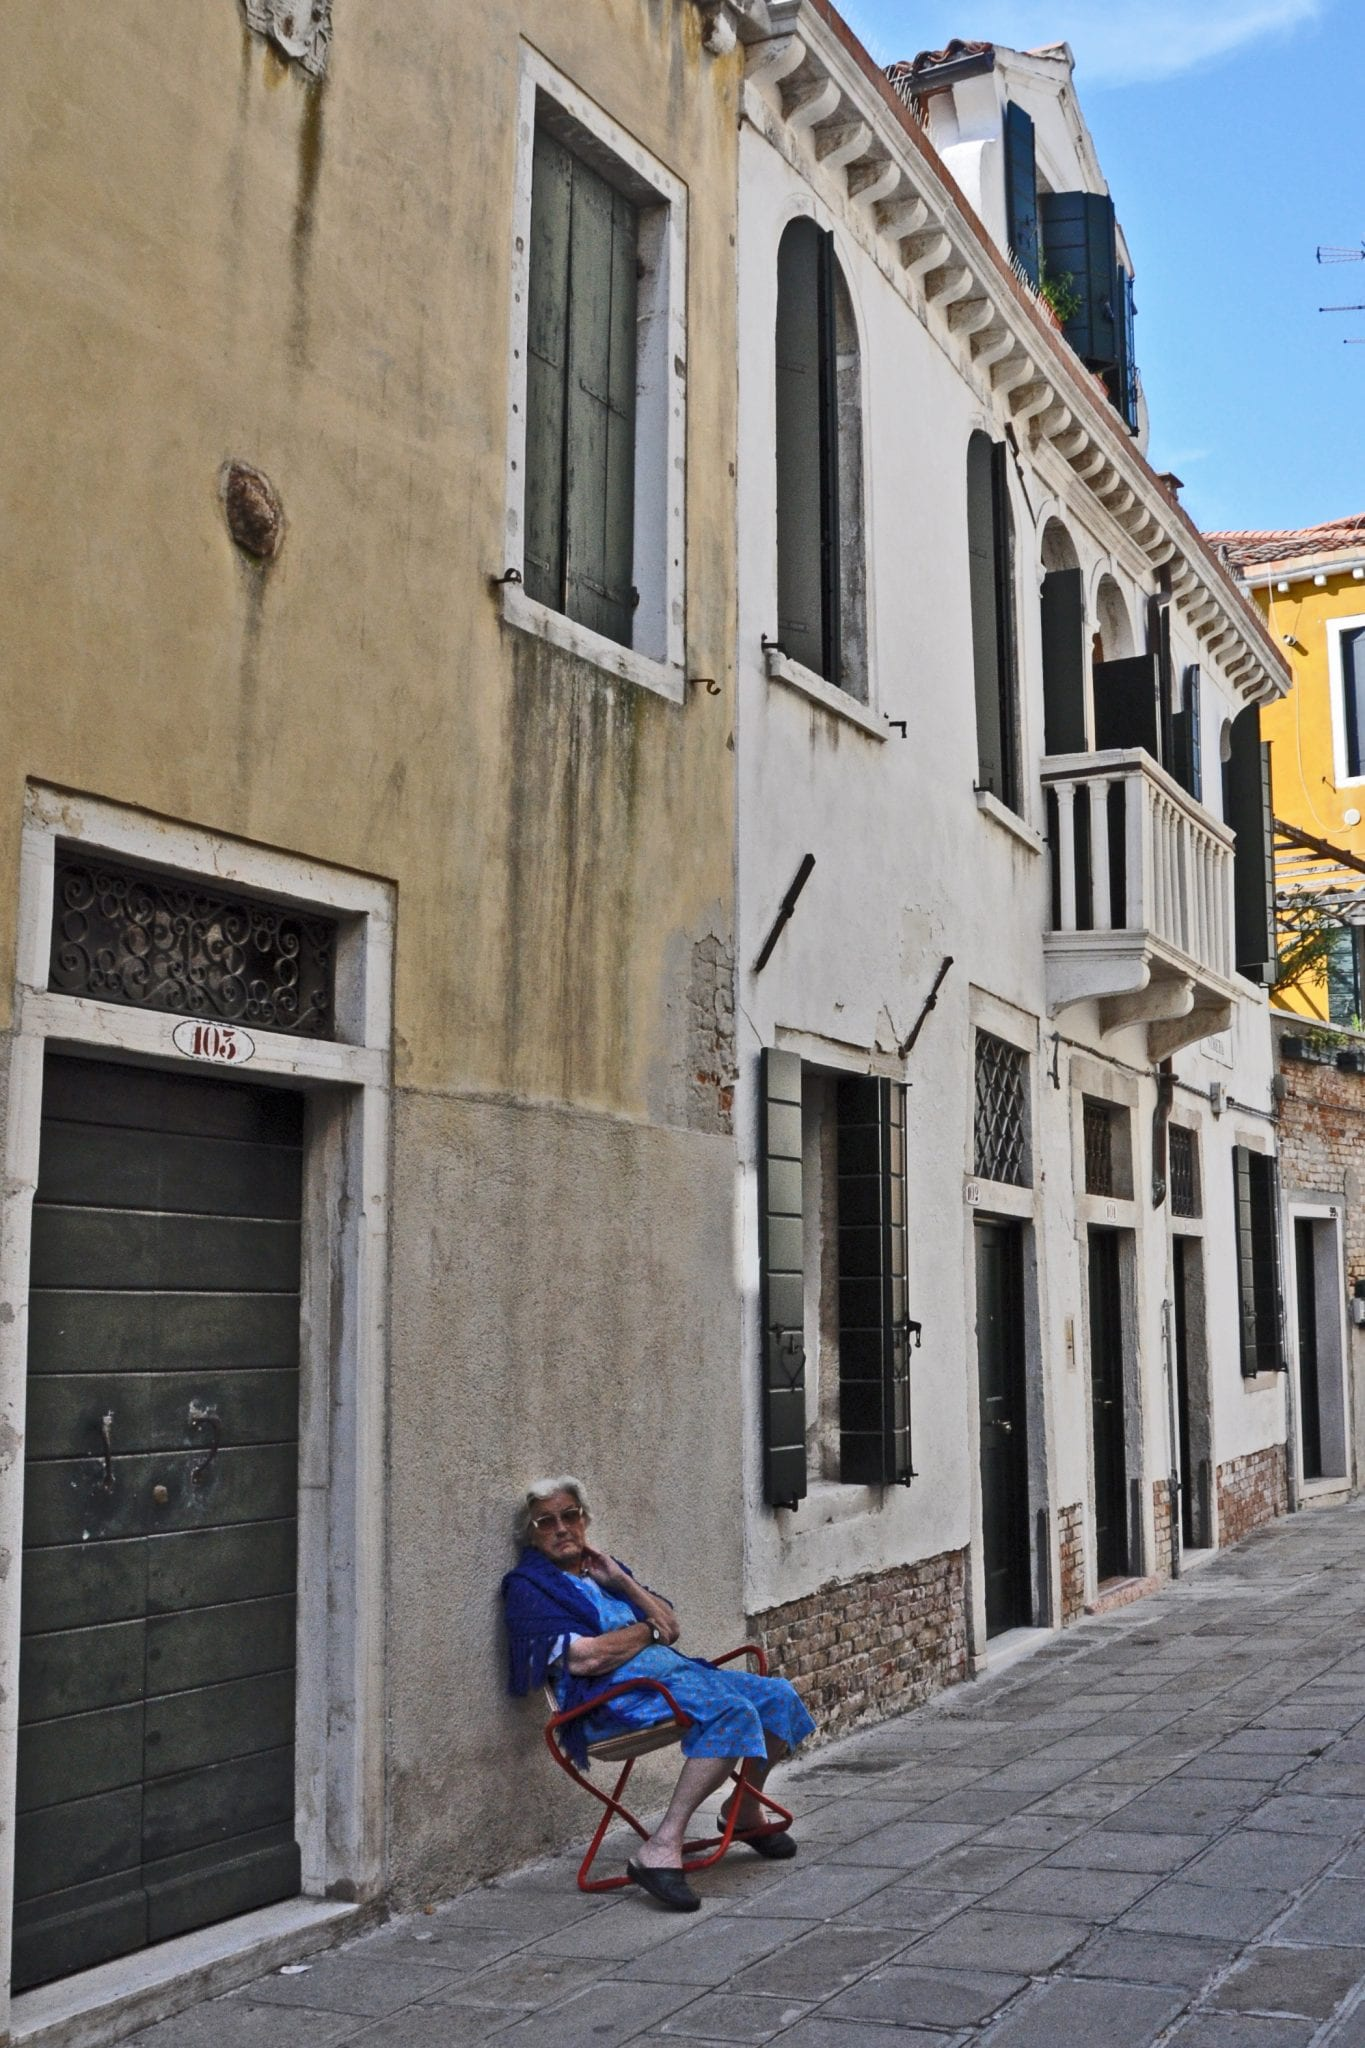 A woman relaxes in the The Castello neighborhood of Venice